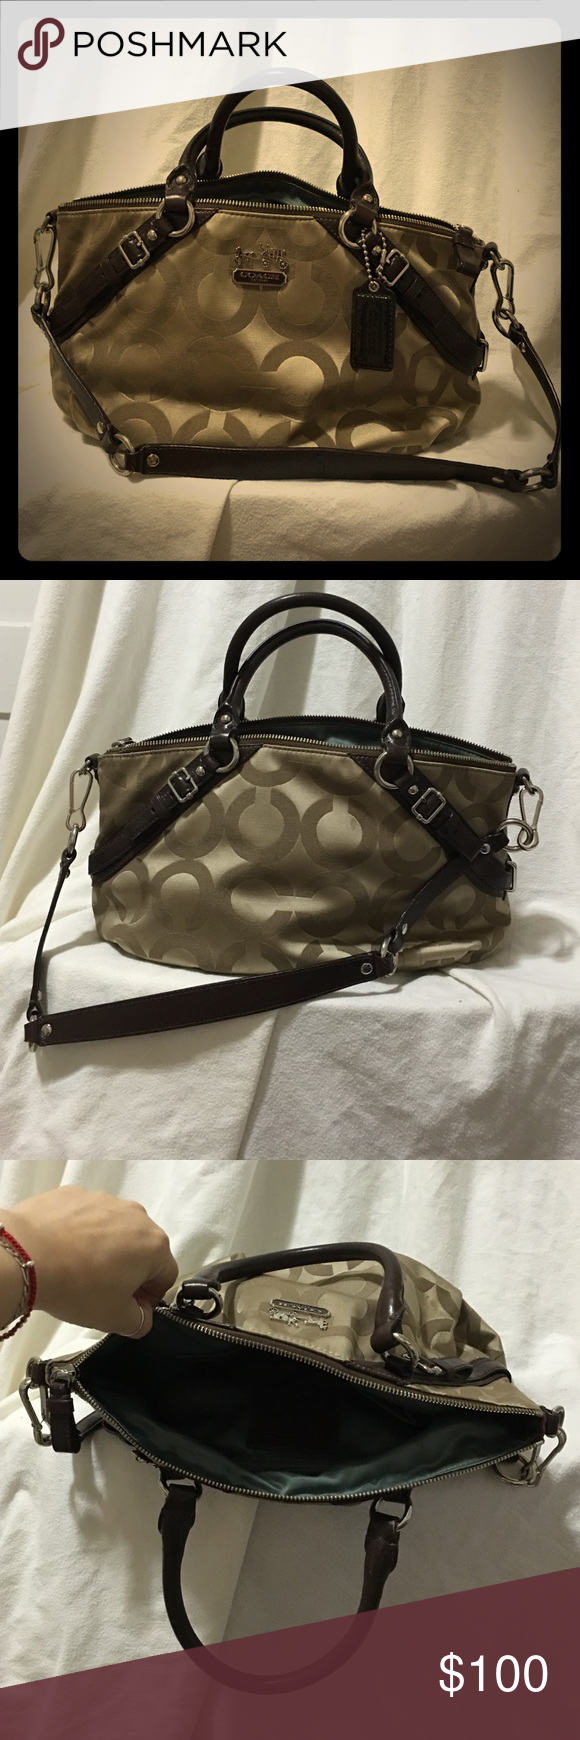 AUTHENTIC COACH BAG BEAUTIFUL COACH BAG WITH ZIPPER STRAP NO DAMAGE ONLY FEW PEN MARKS INSIDE. IN MINT CONDITION! COACH Bags Shoulder Bags